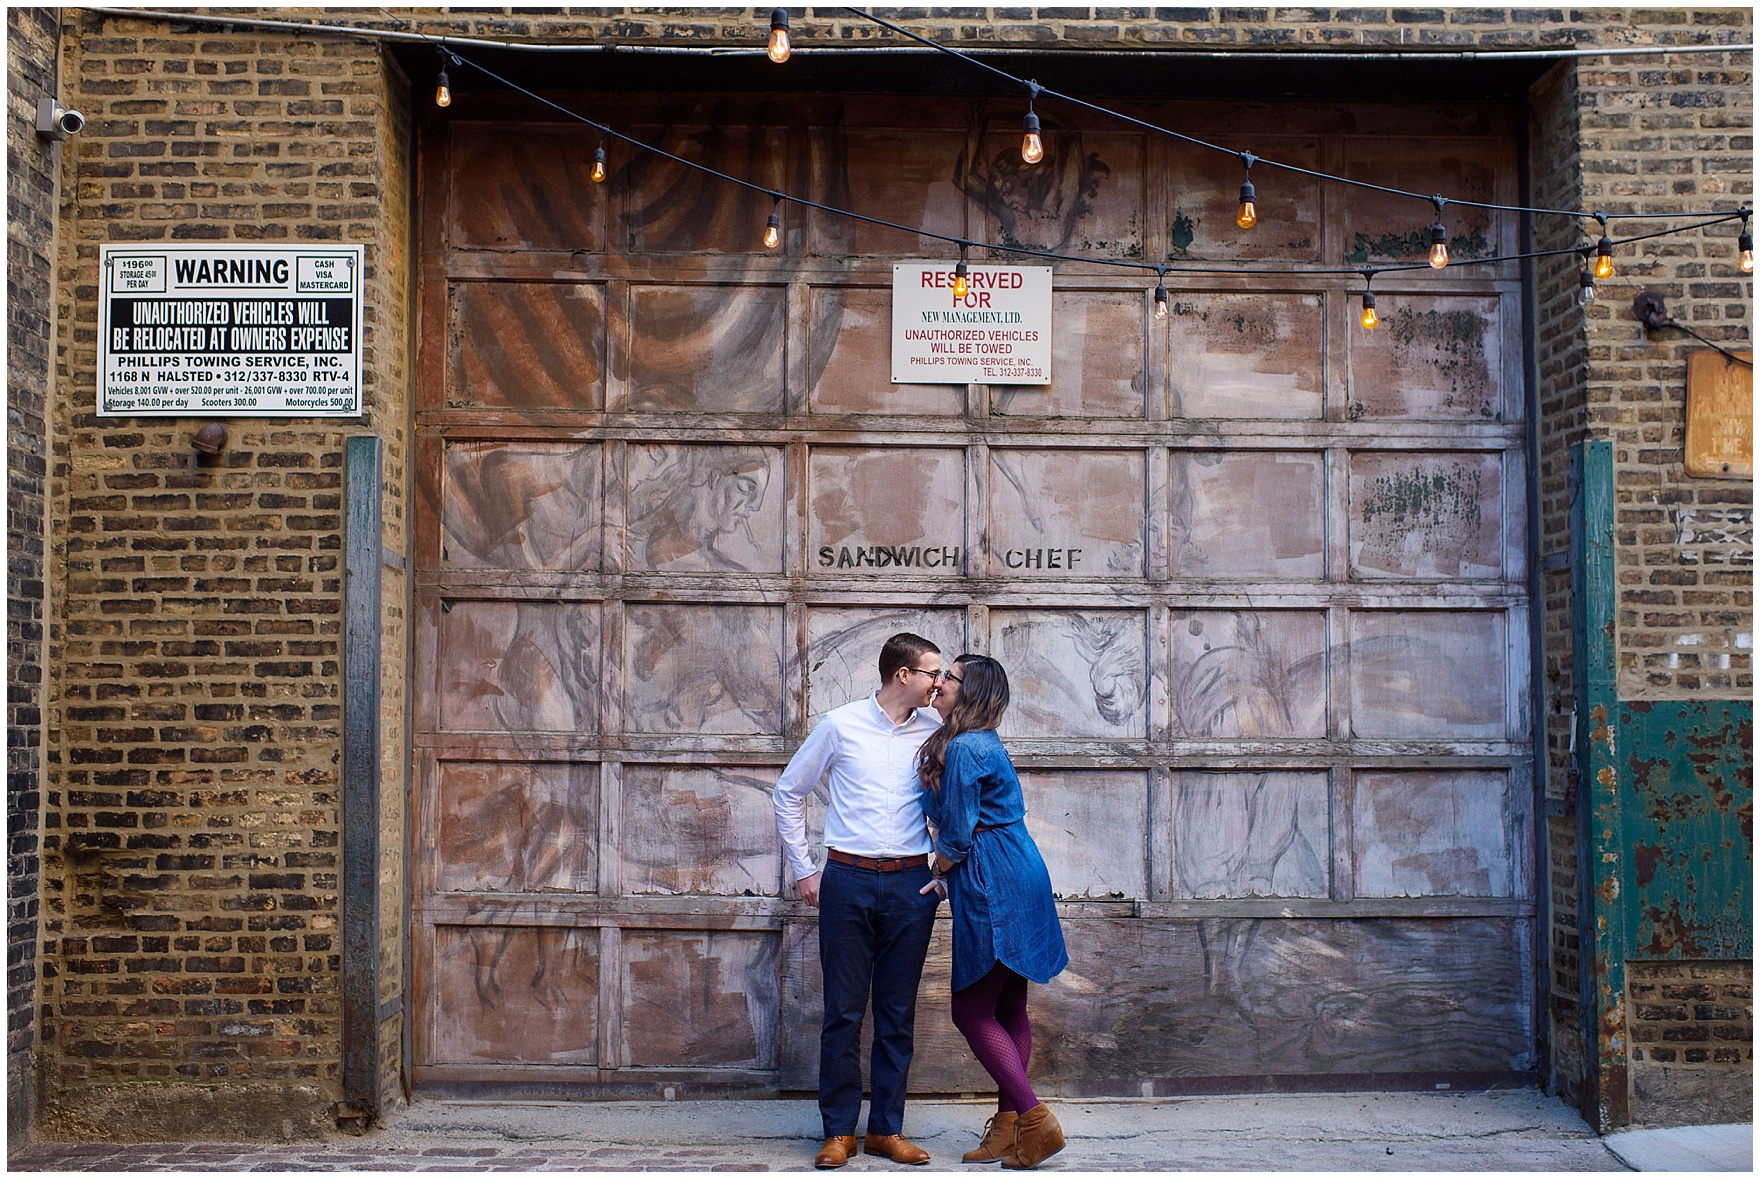 A couple grins and kisses in a fun urban alley during a West Loop Chicago photography session.